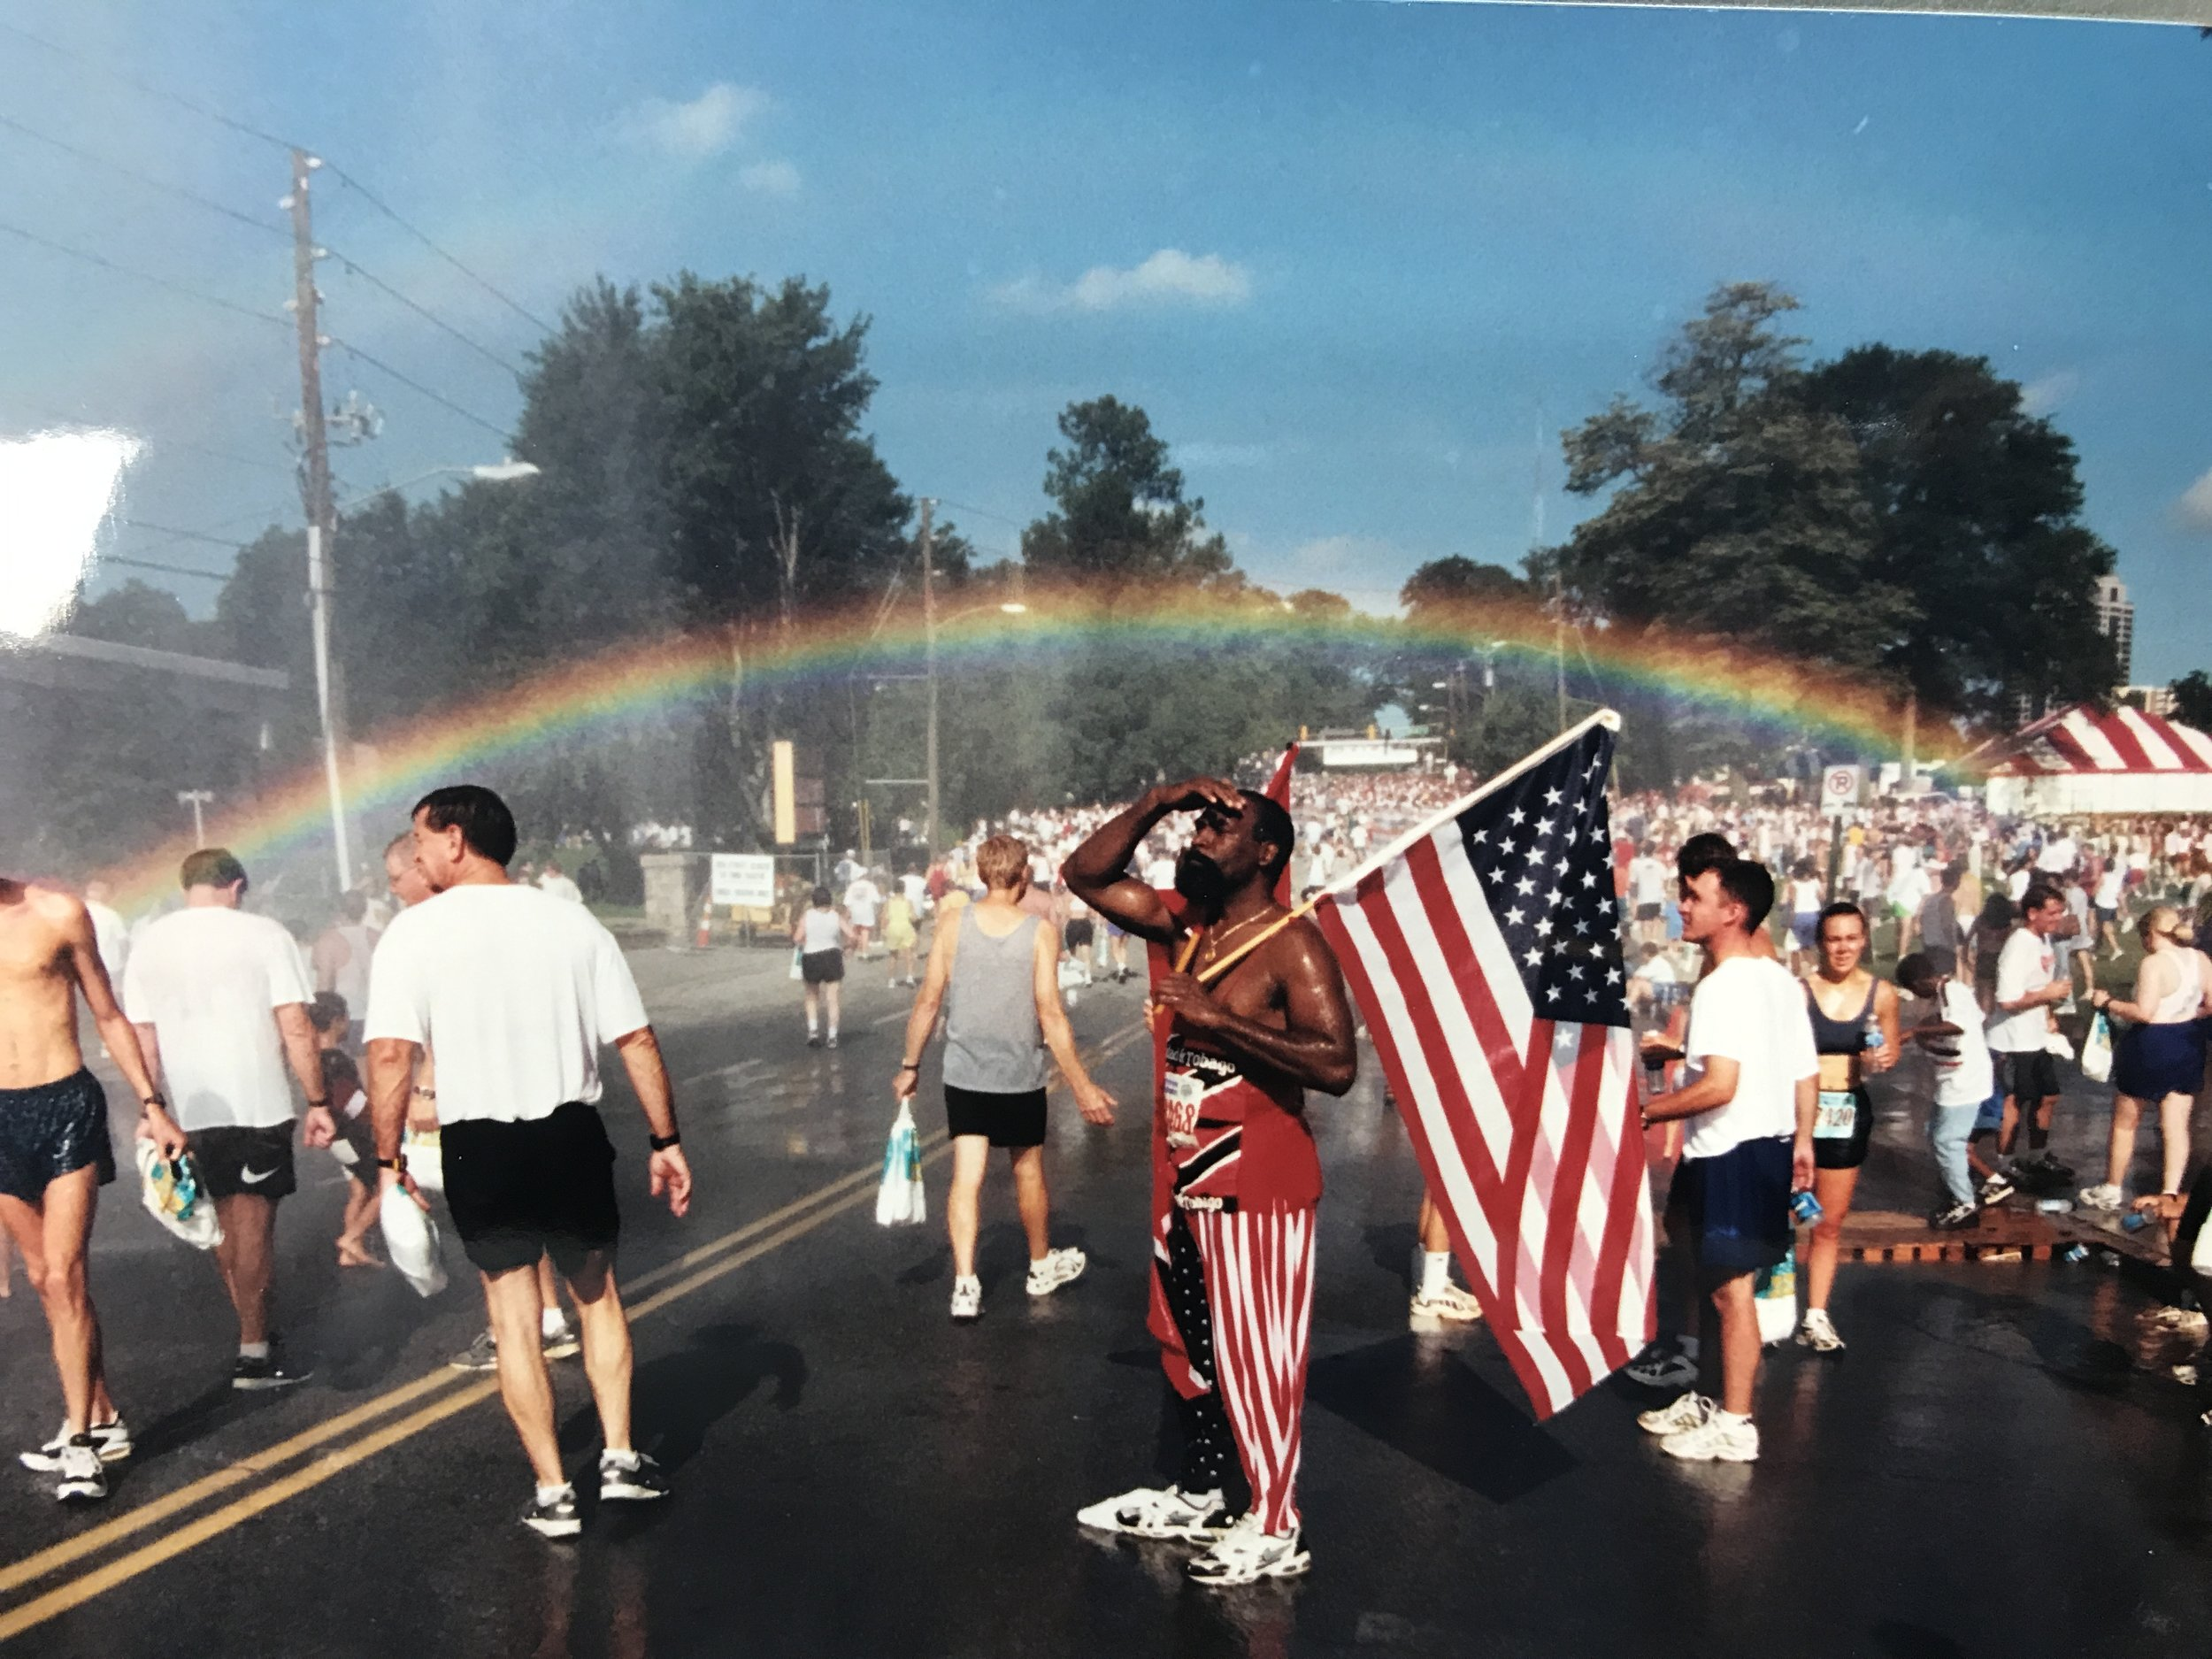 A rainbow perfectly arched over 10th Street in 1999, the first year the AJC Peachtree Road Race finished in its current location.